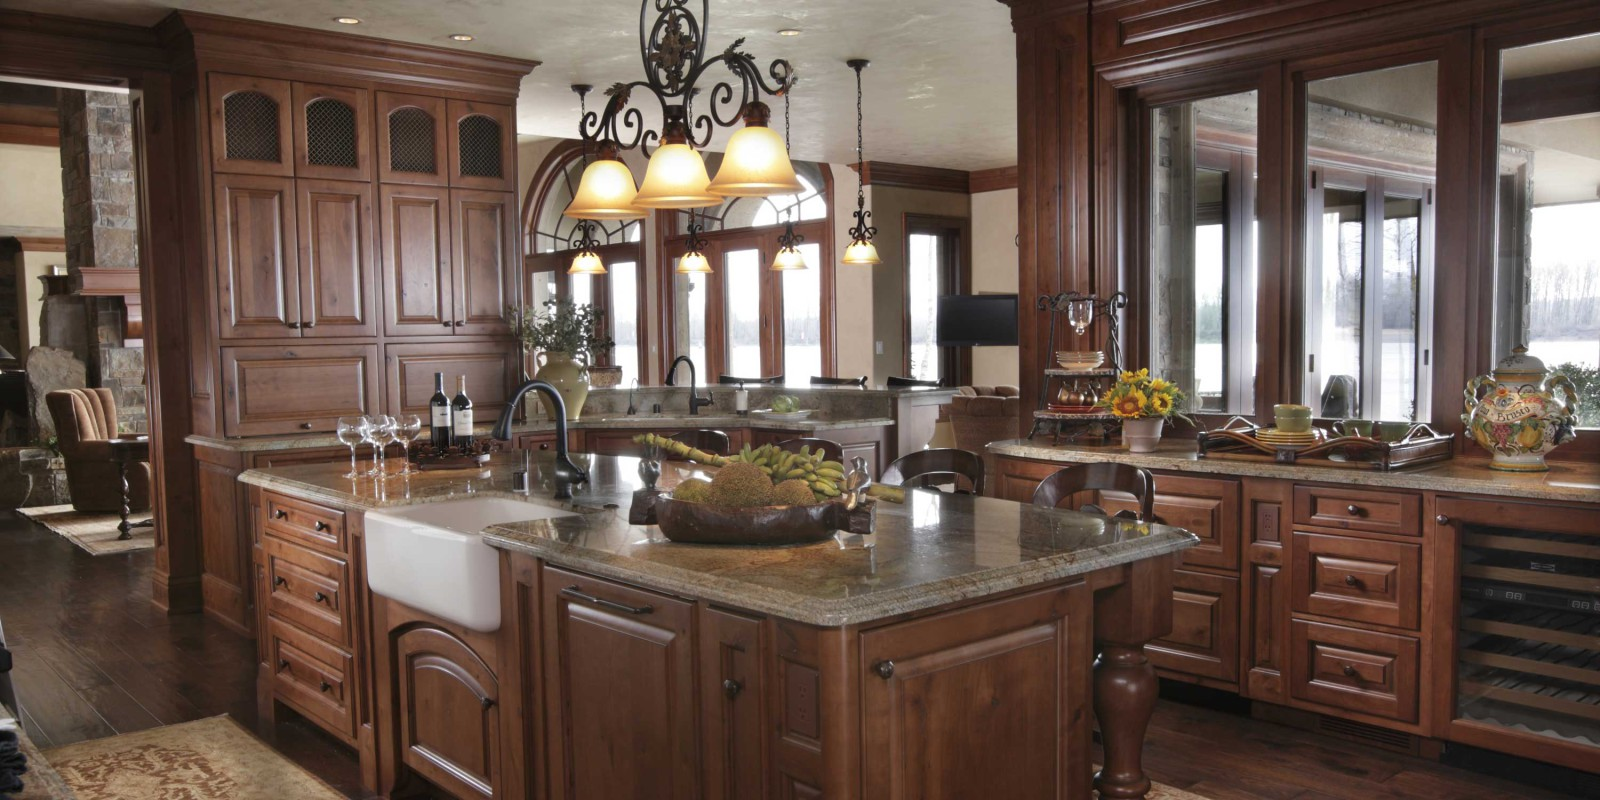 Granite Stone For Kitchen Marble And Granite Counter Tops Fireplaces Kitchens